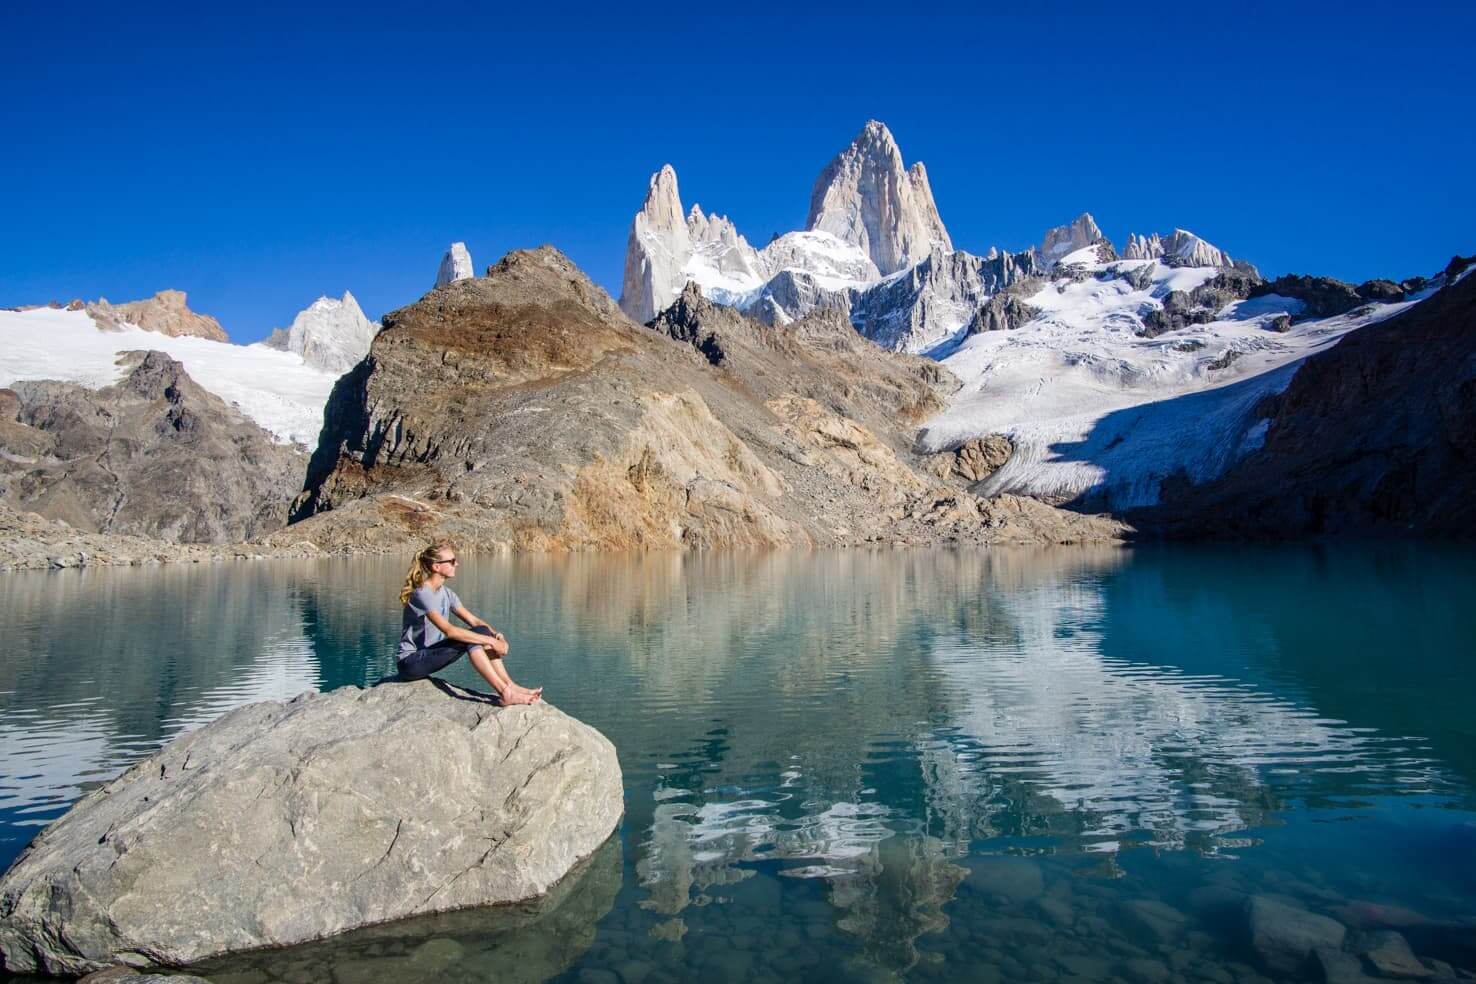 19 smart tips for planning your next trip - Fitz Roy, Argentina